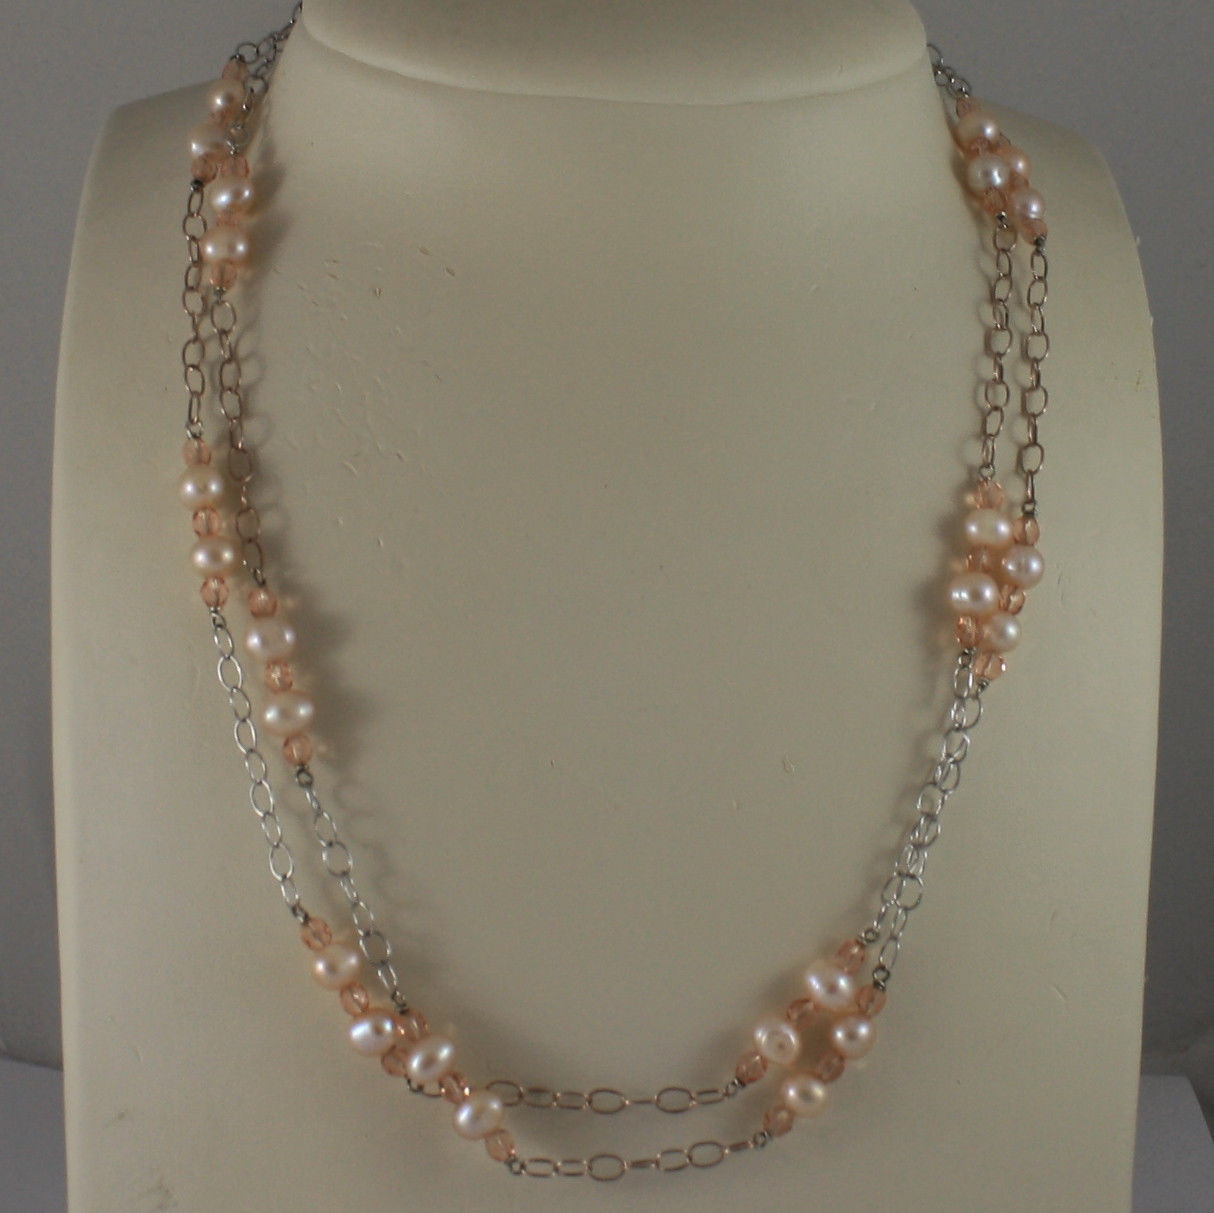 .925 SILVER RHODIUM AND ROSE GOLD PLATED NECKLACE WITH PINK PEARLS AND CRYSTALS